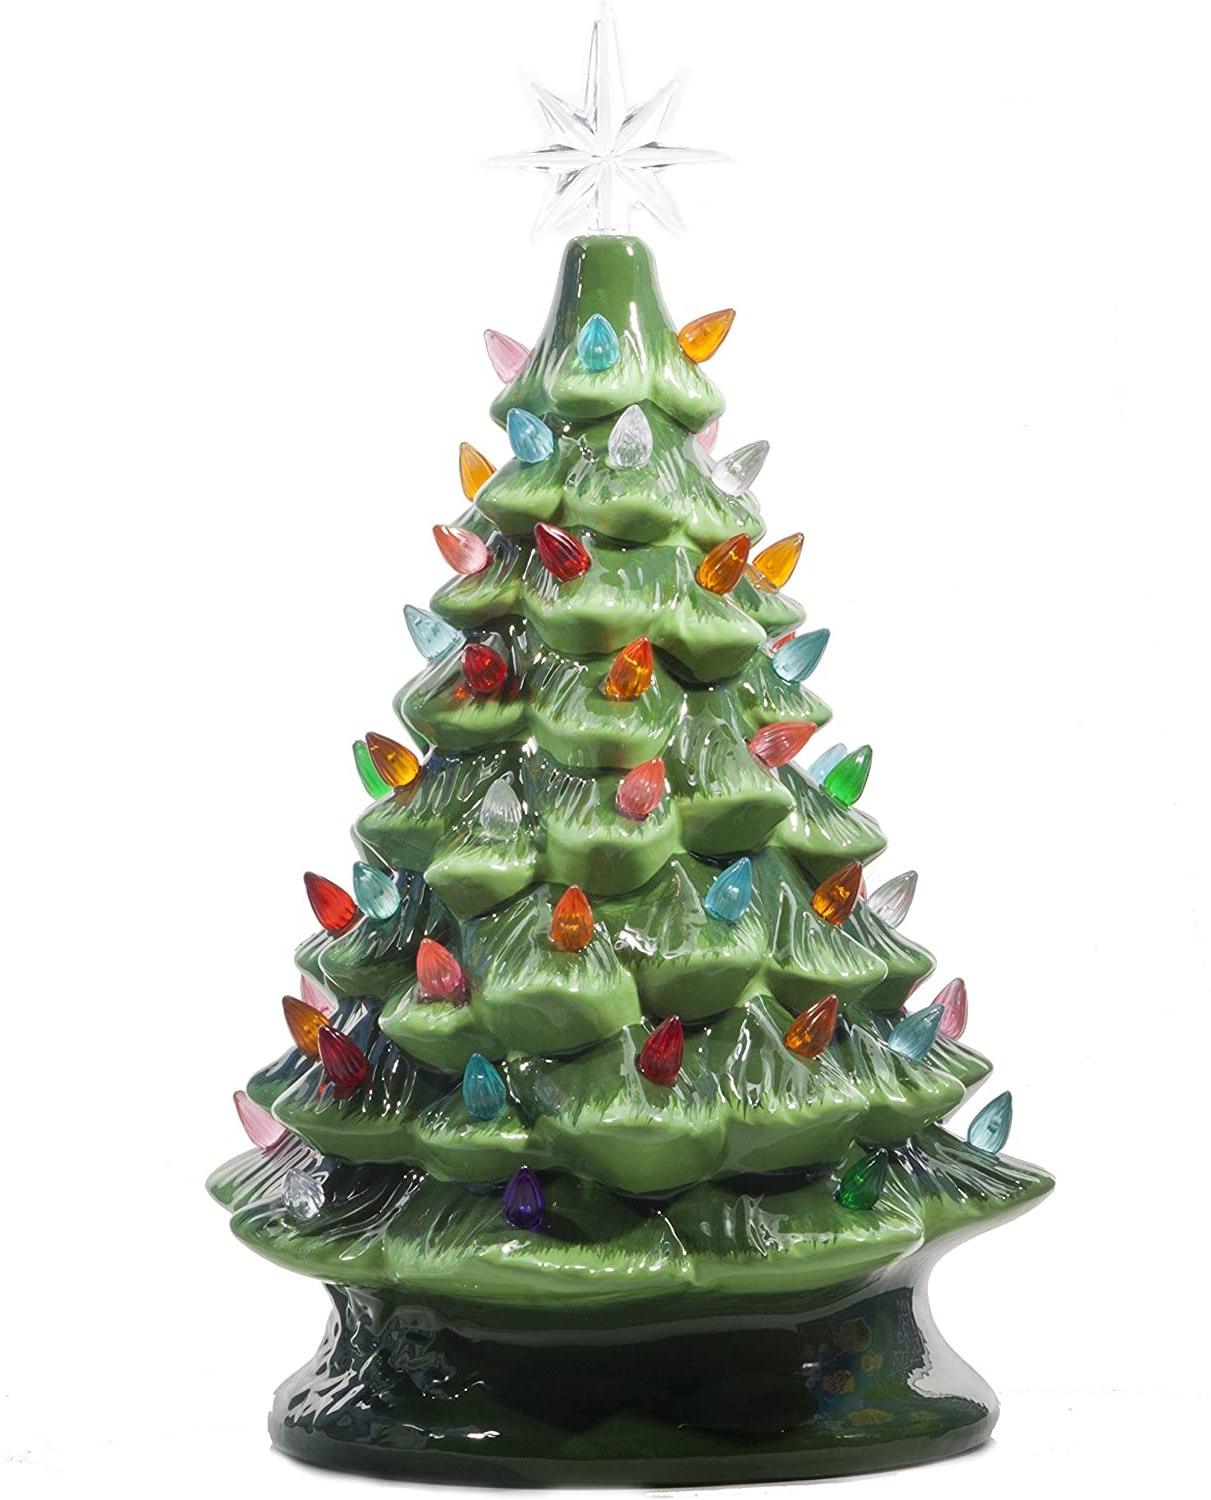 Nostalgic Ceramic Christmas Tree Decorations & Prints